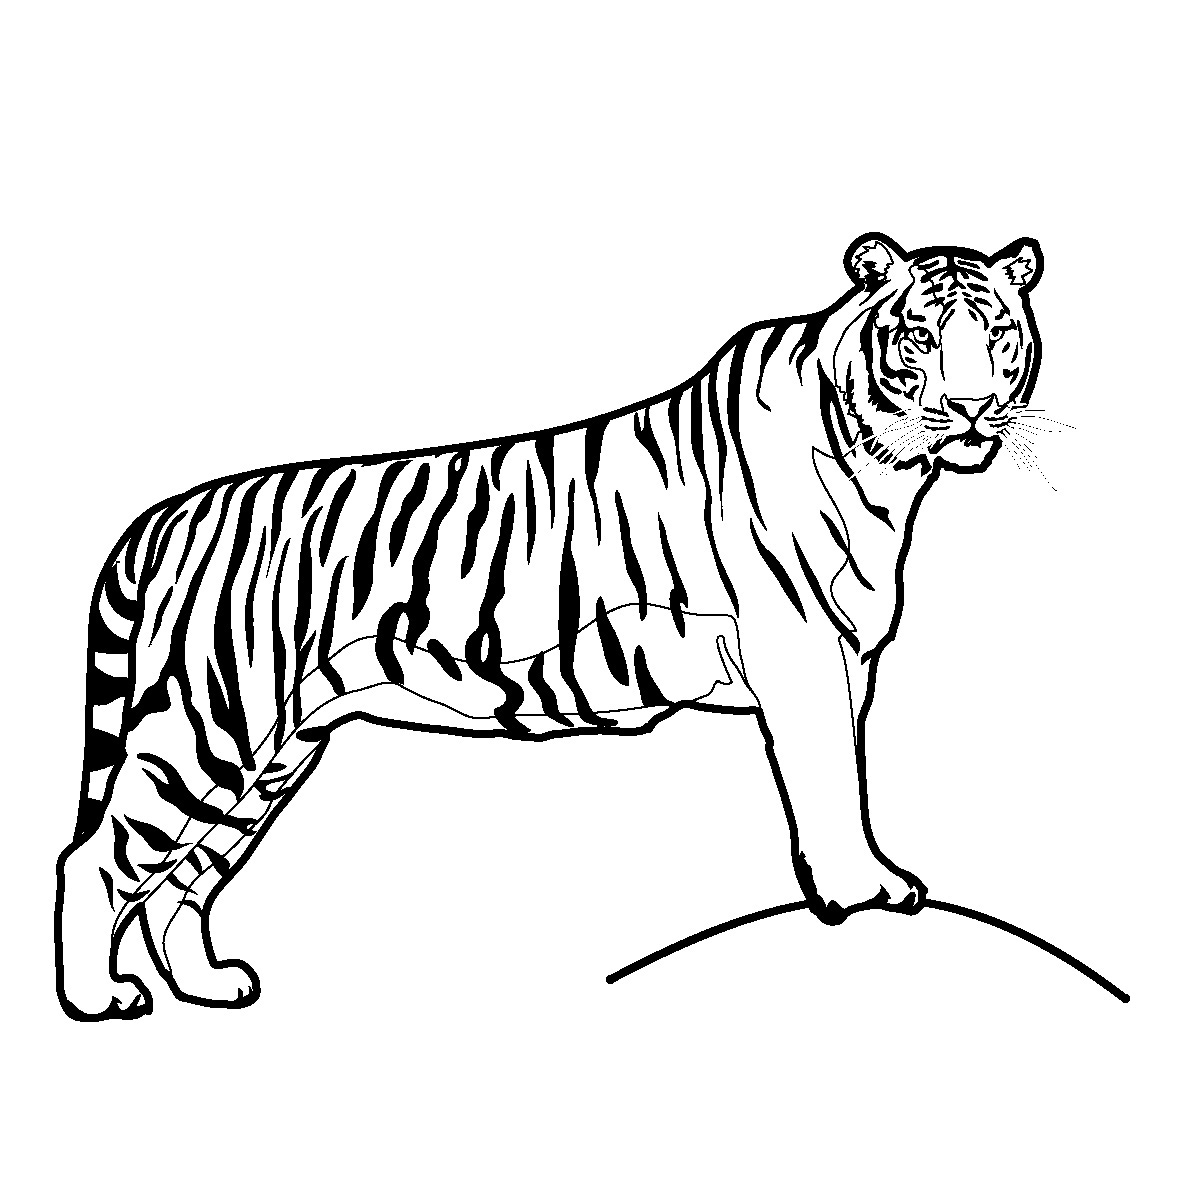 1200x1200 Free Tiger Clipart Black and White Image